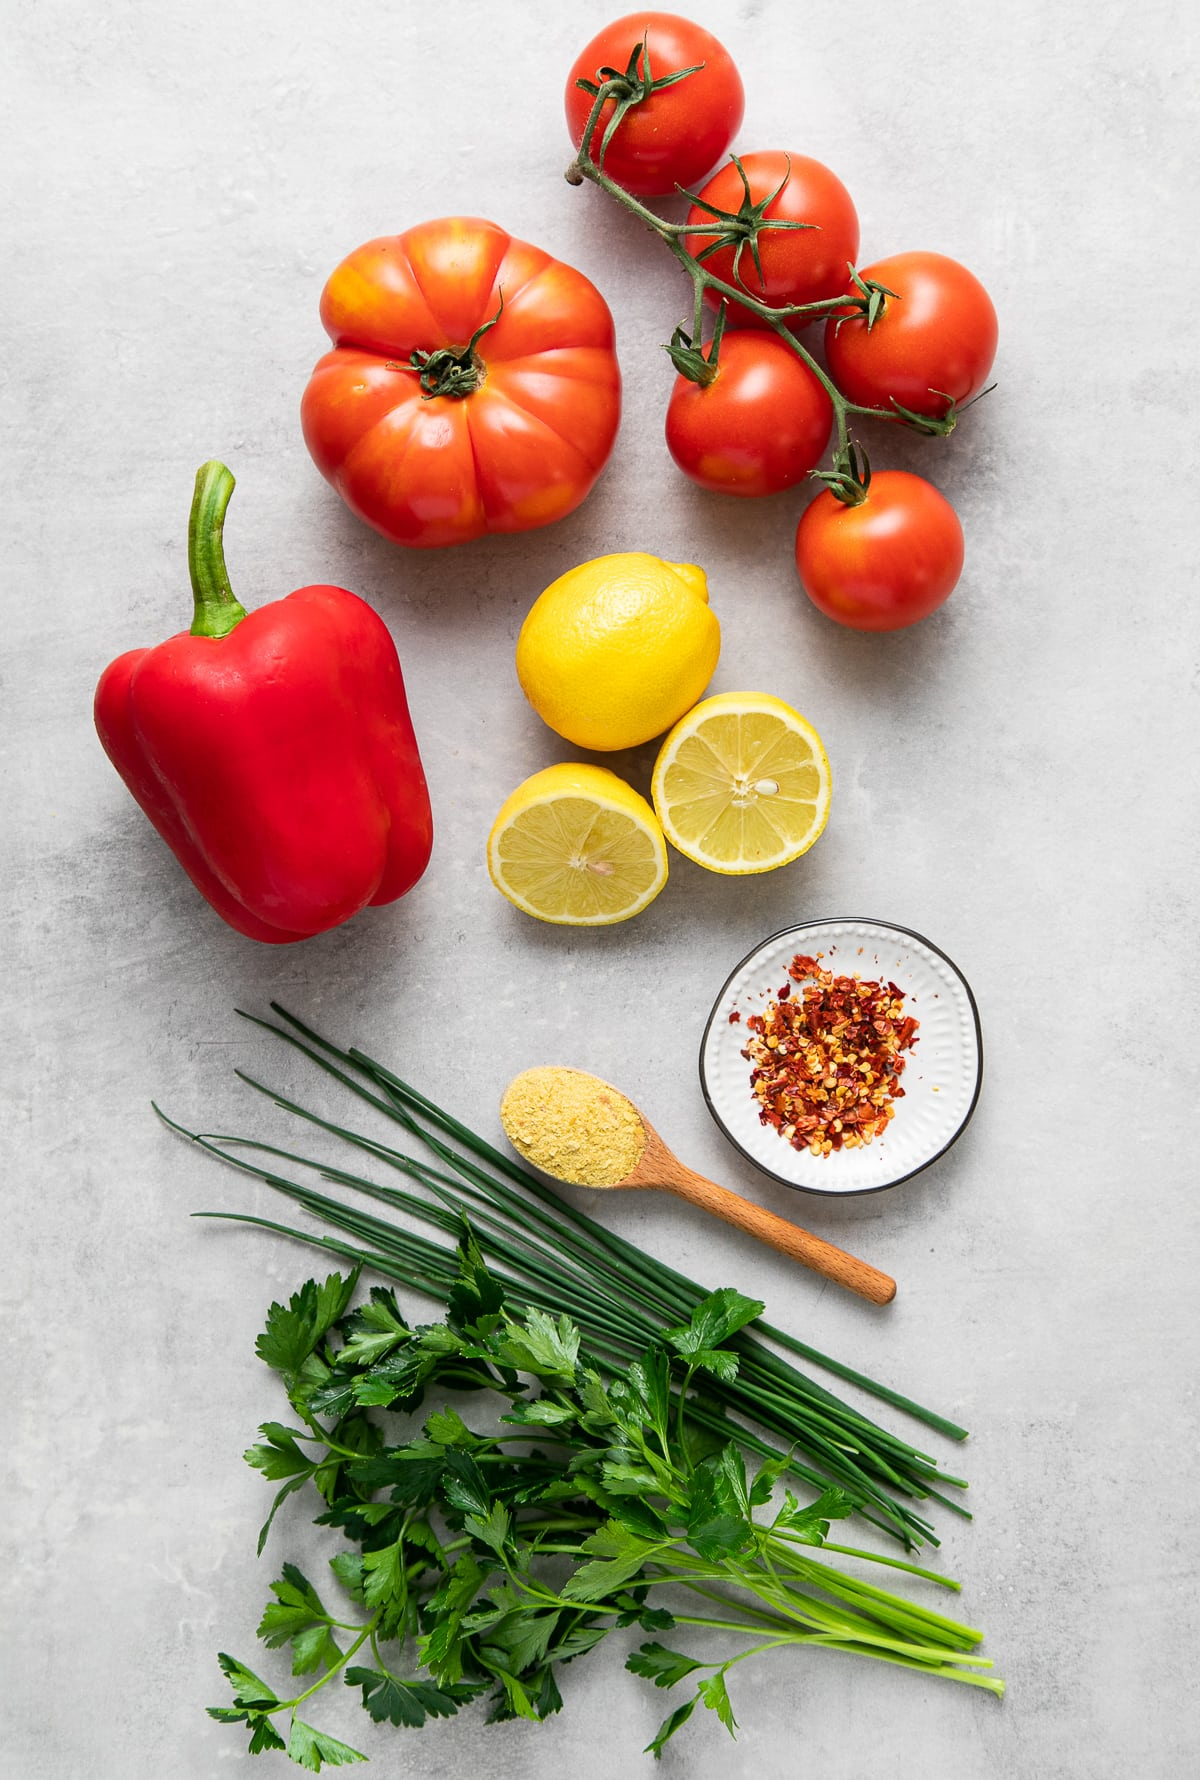 top down view of ingredients needed to make raw tomato soup recipe.